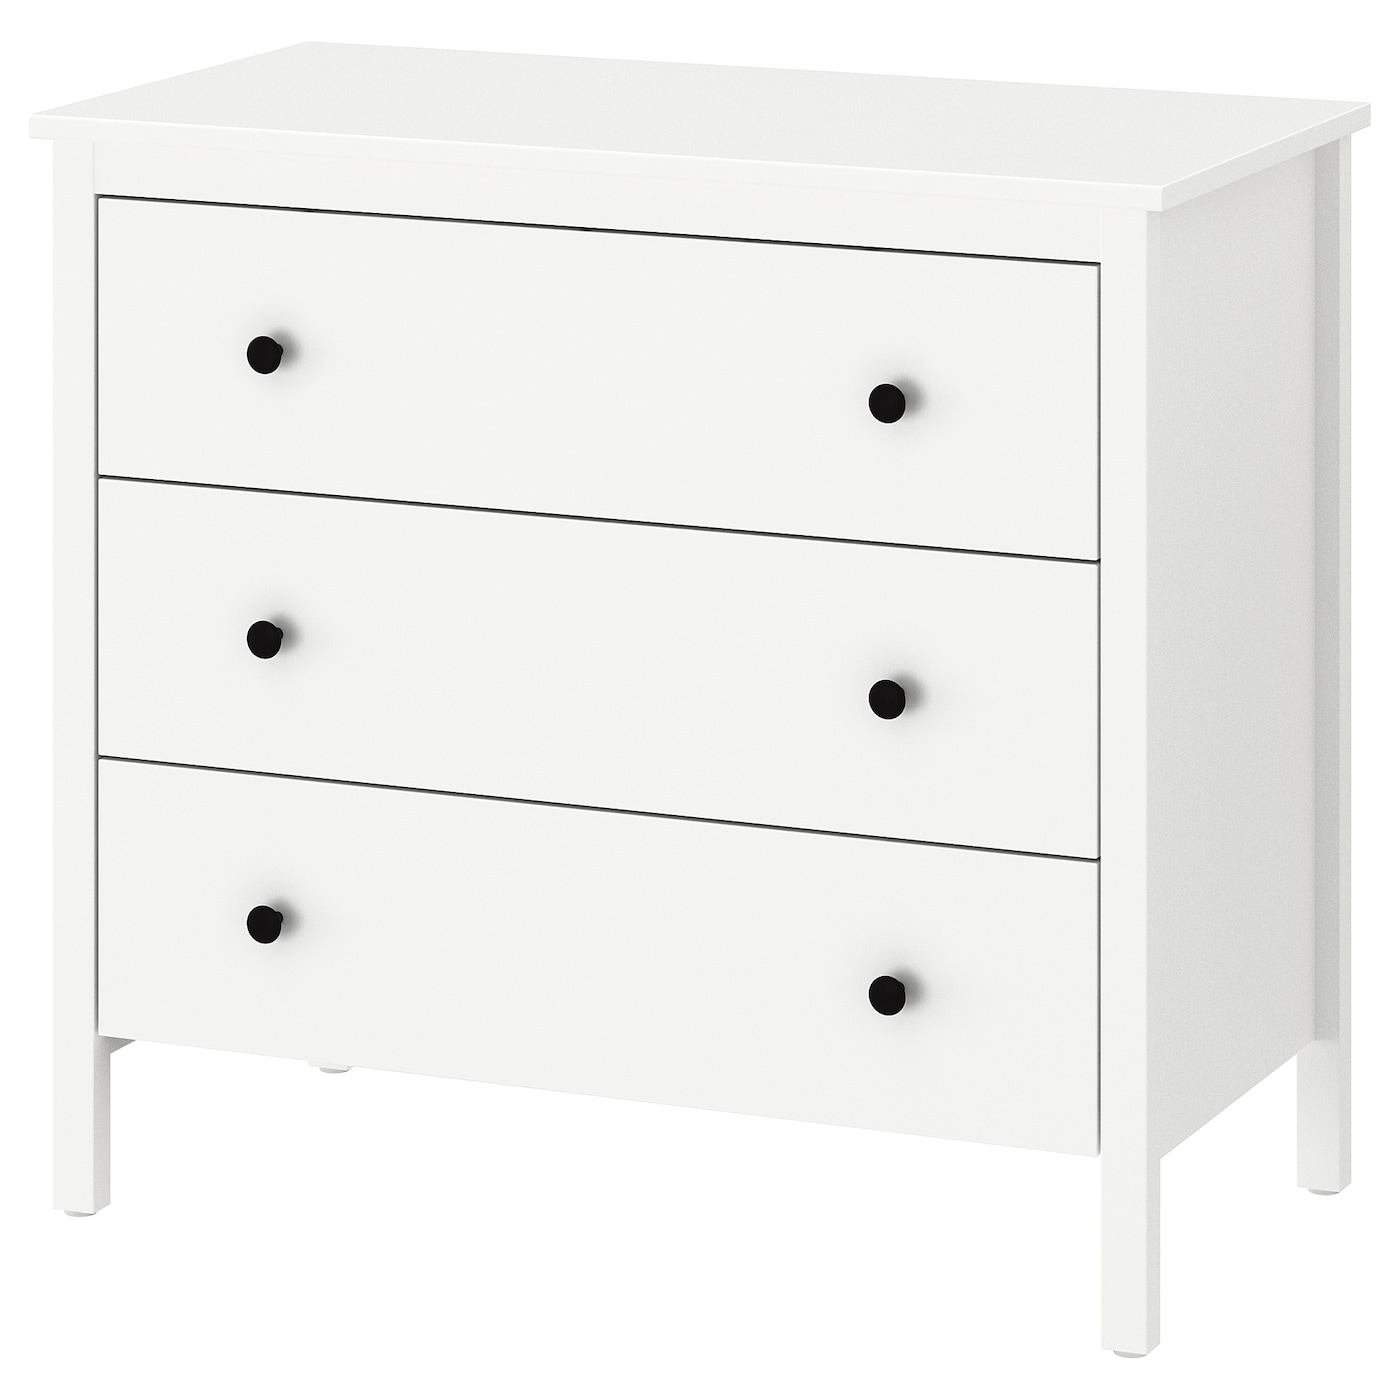 Ikea Malm Ladekast Met 3 Laden.Klassiek Dressoir Met 3 Lades Wit In 2019 Products